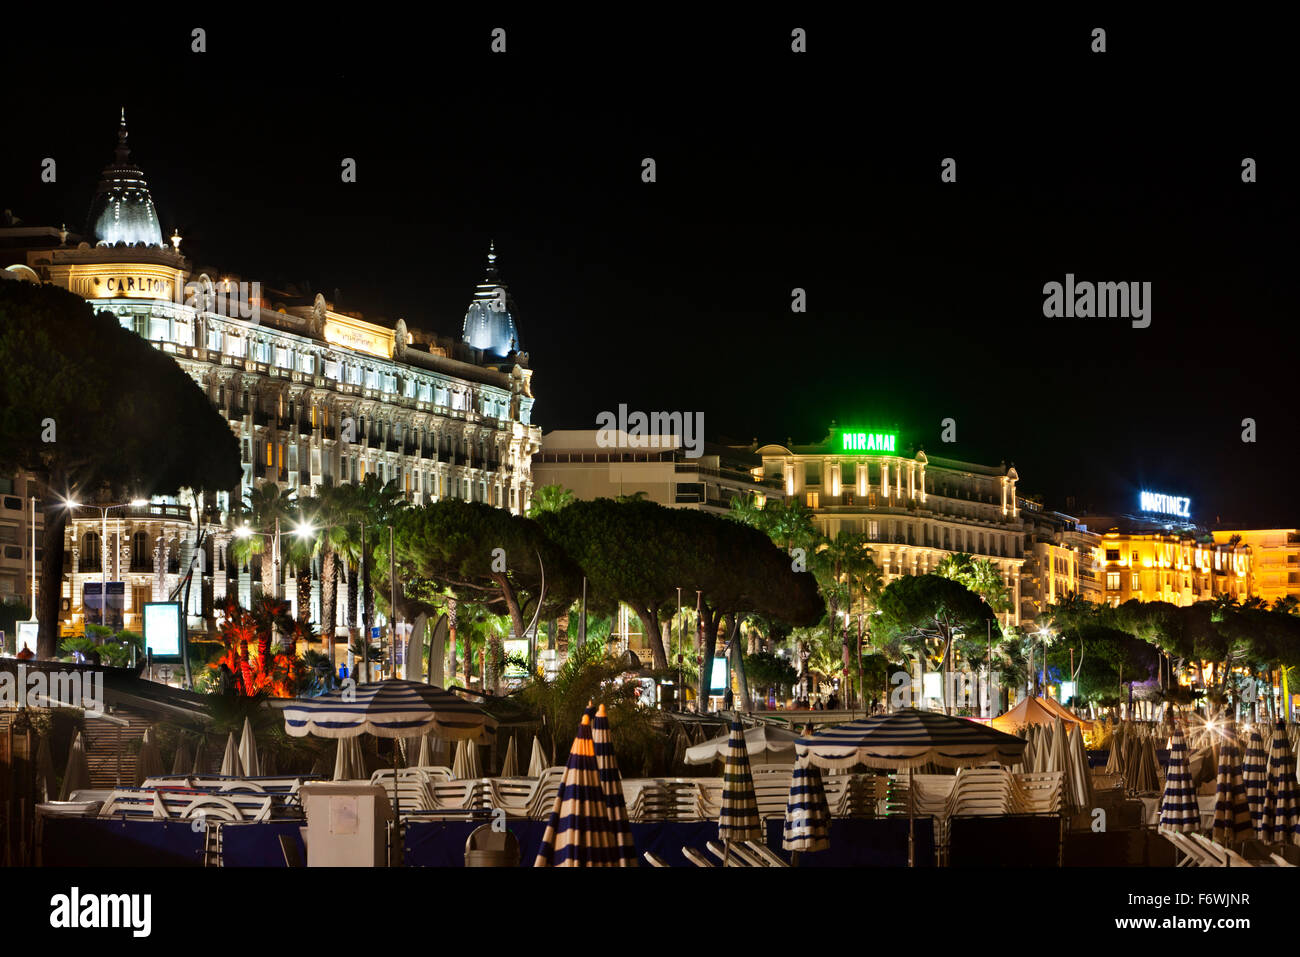 Luxus hotels and beach at night, Cannes, Provence, France - Stock Image